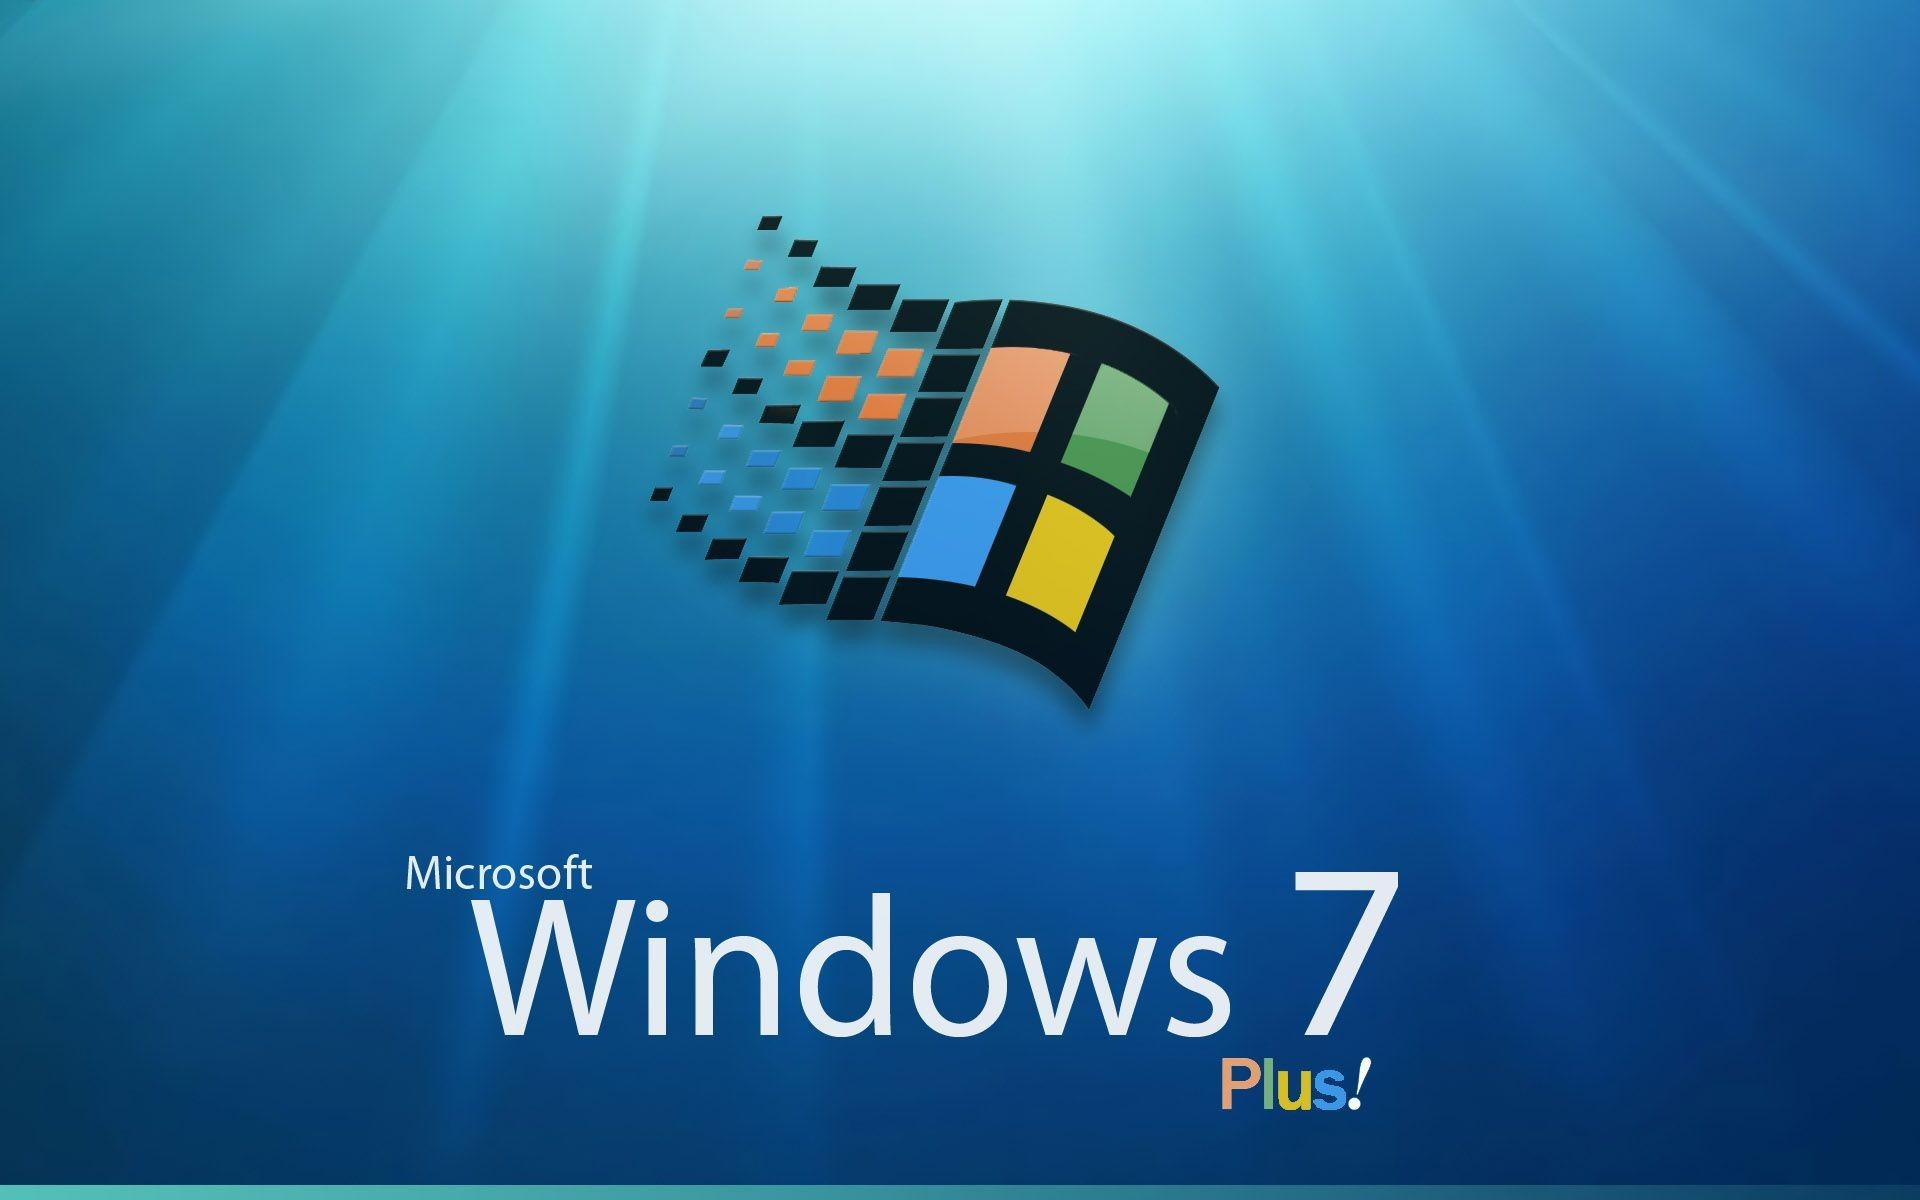 Windows 98 wallpaper download free amazing hd backgrounds for windows 98 wallpapers 2 voltagebd Choice Image